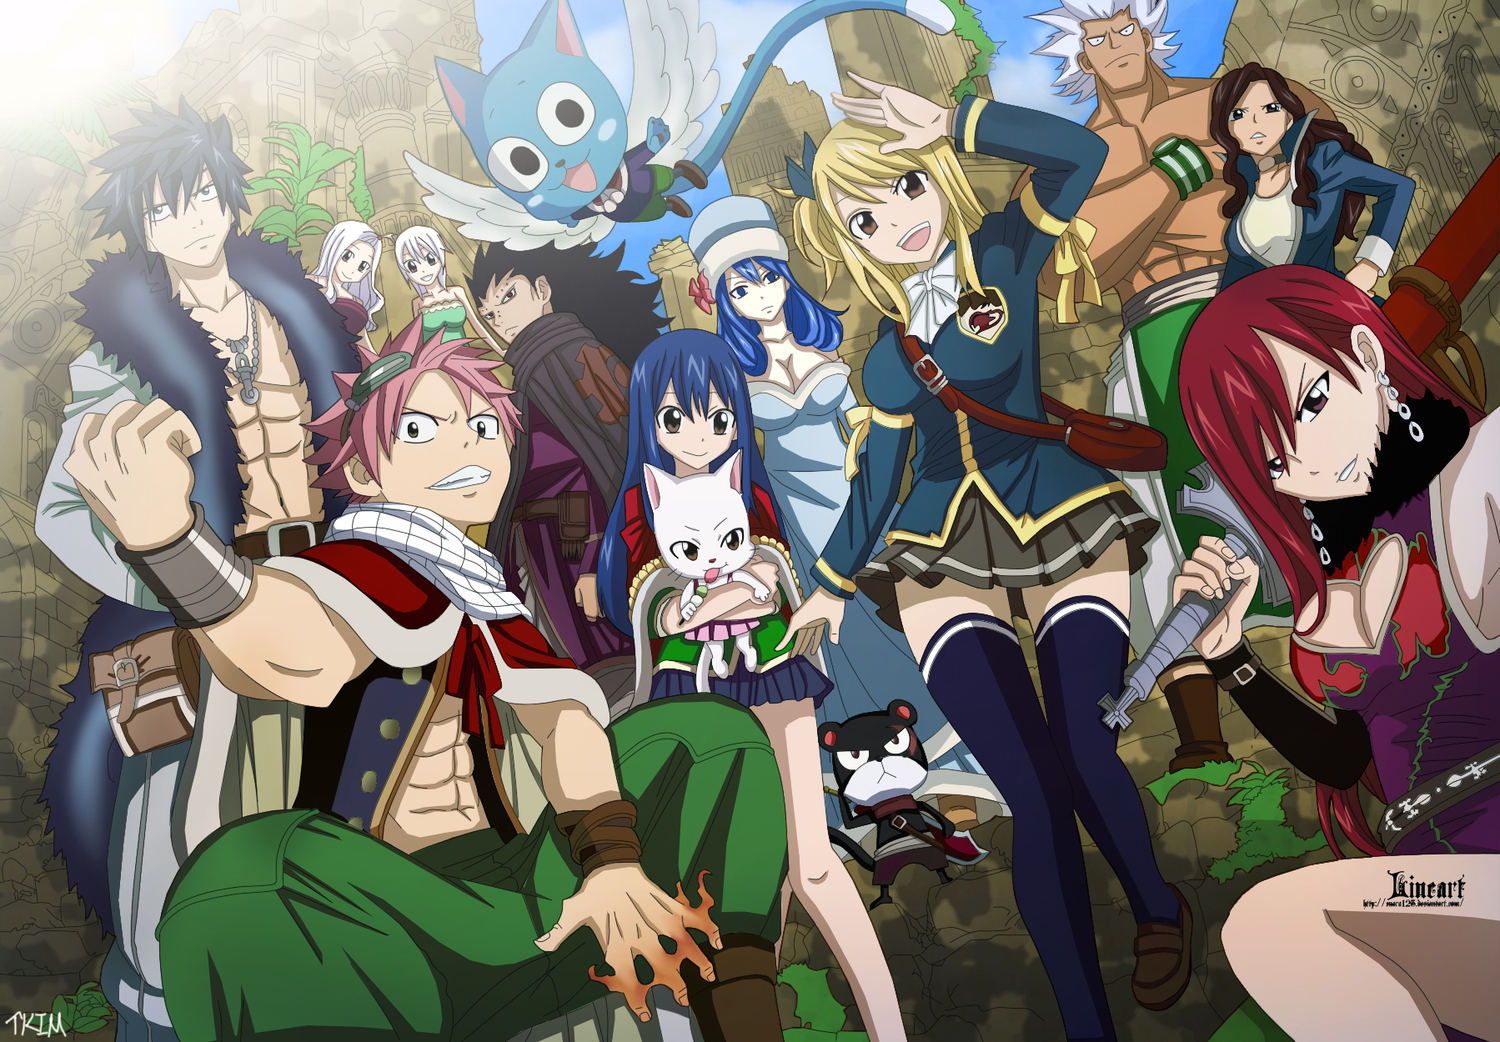 Fairy Tail Guild Wallpaper Hd 196 Fairy Tail ...